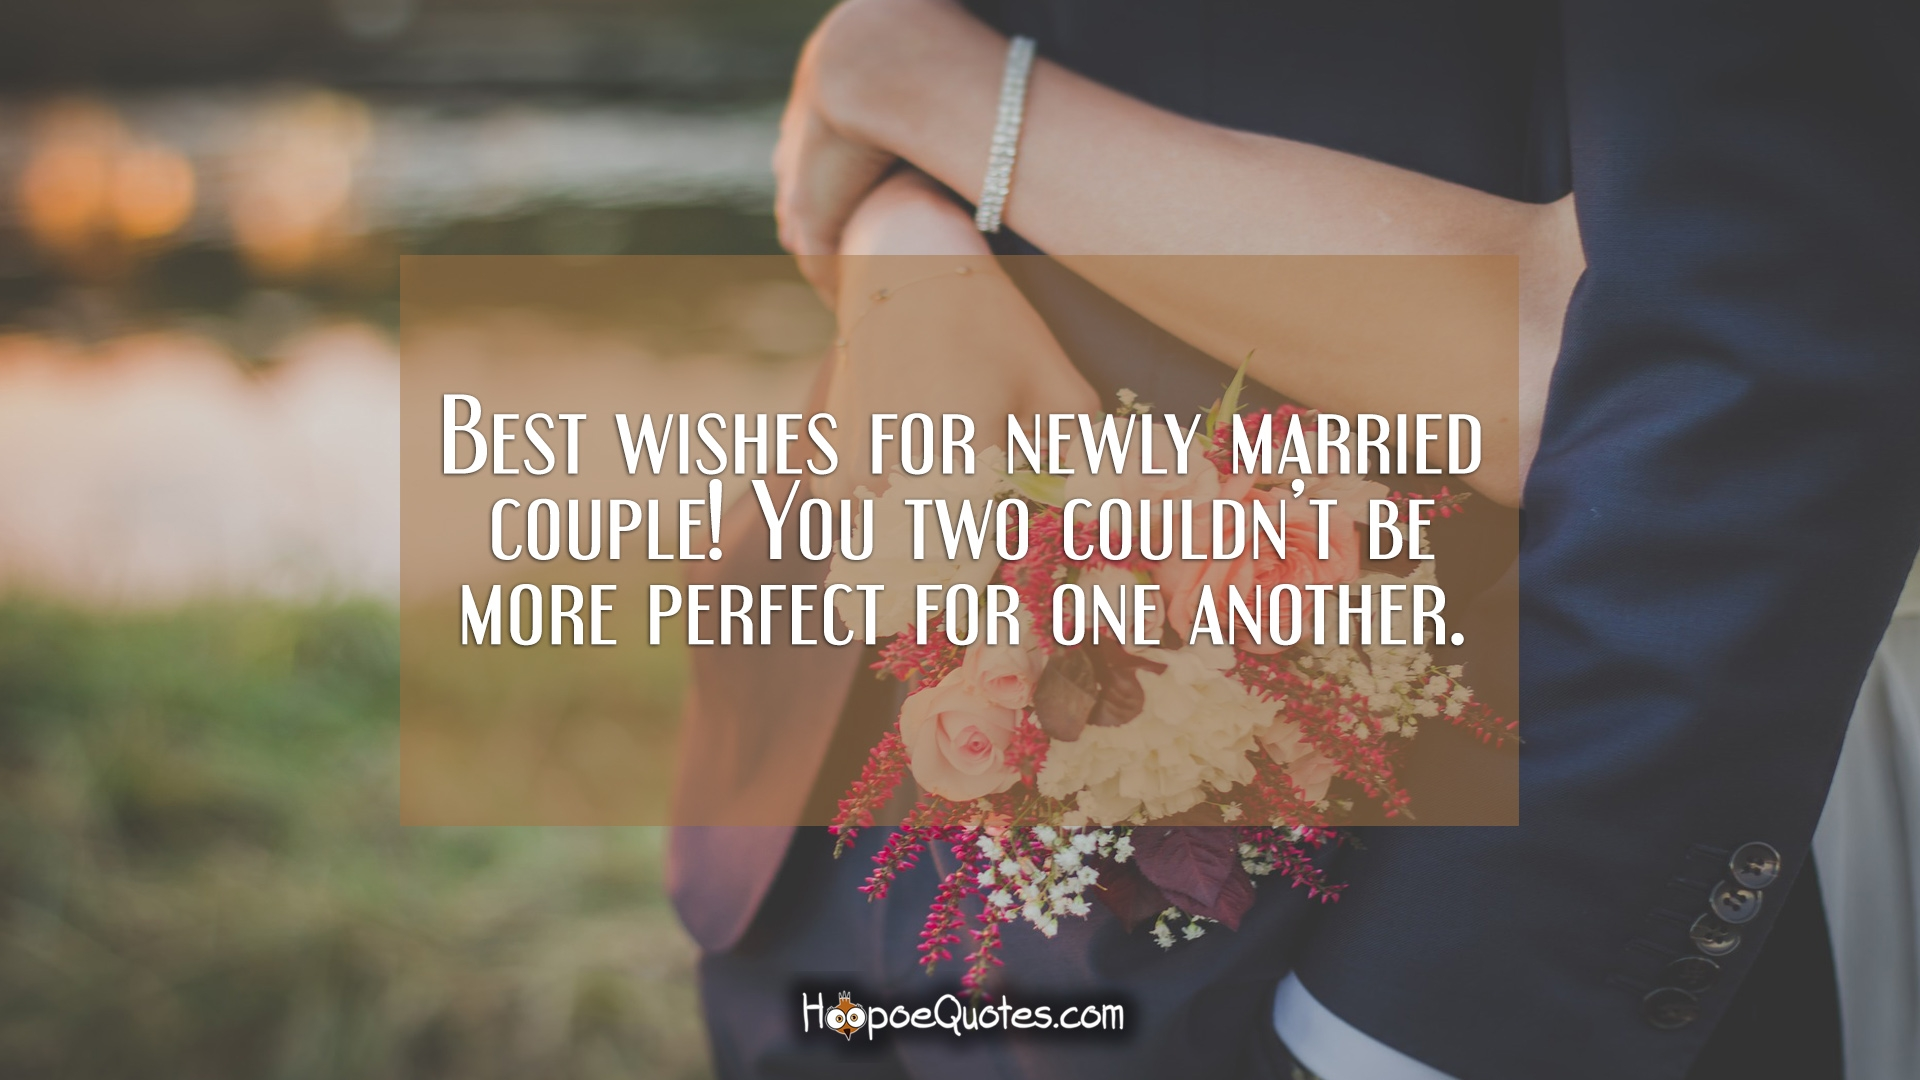 Best Wishes For Newly Married